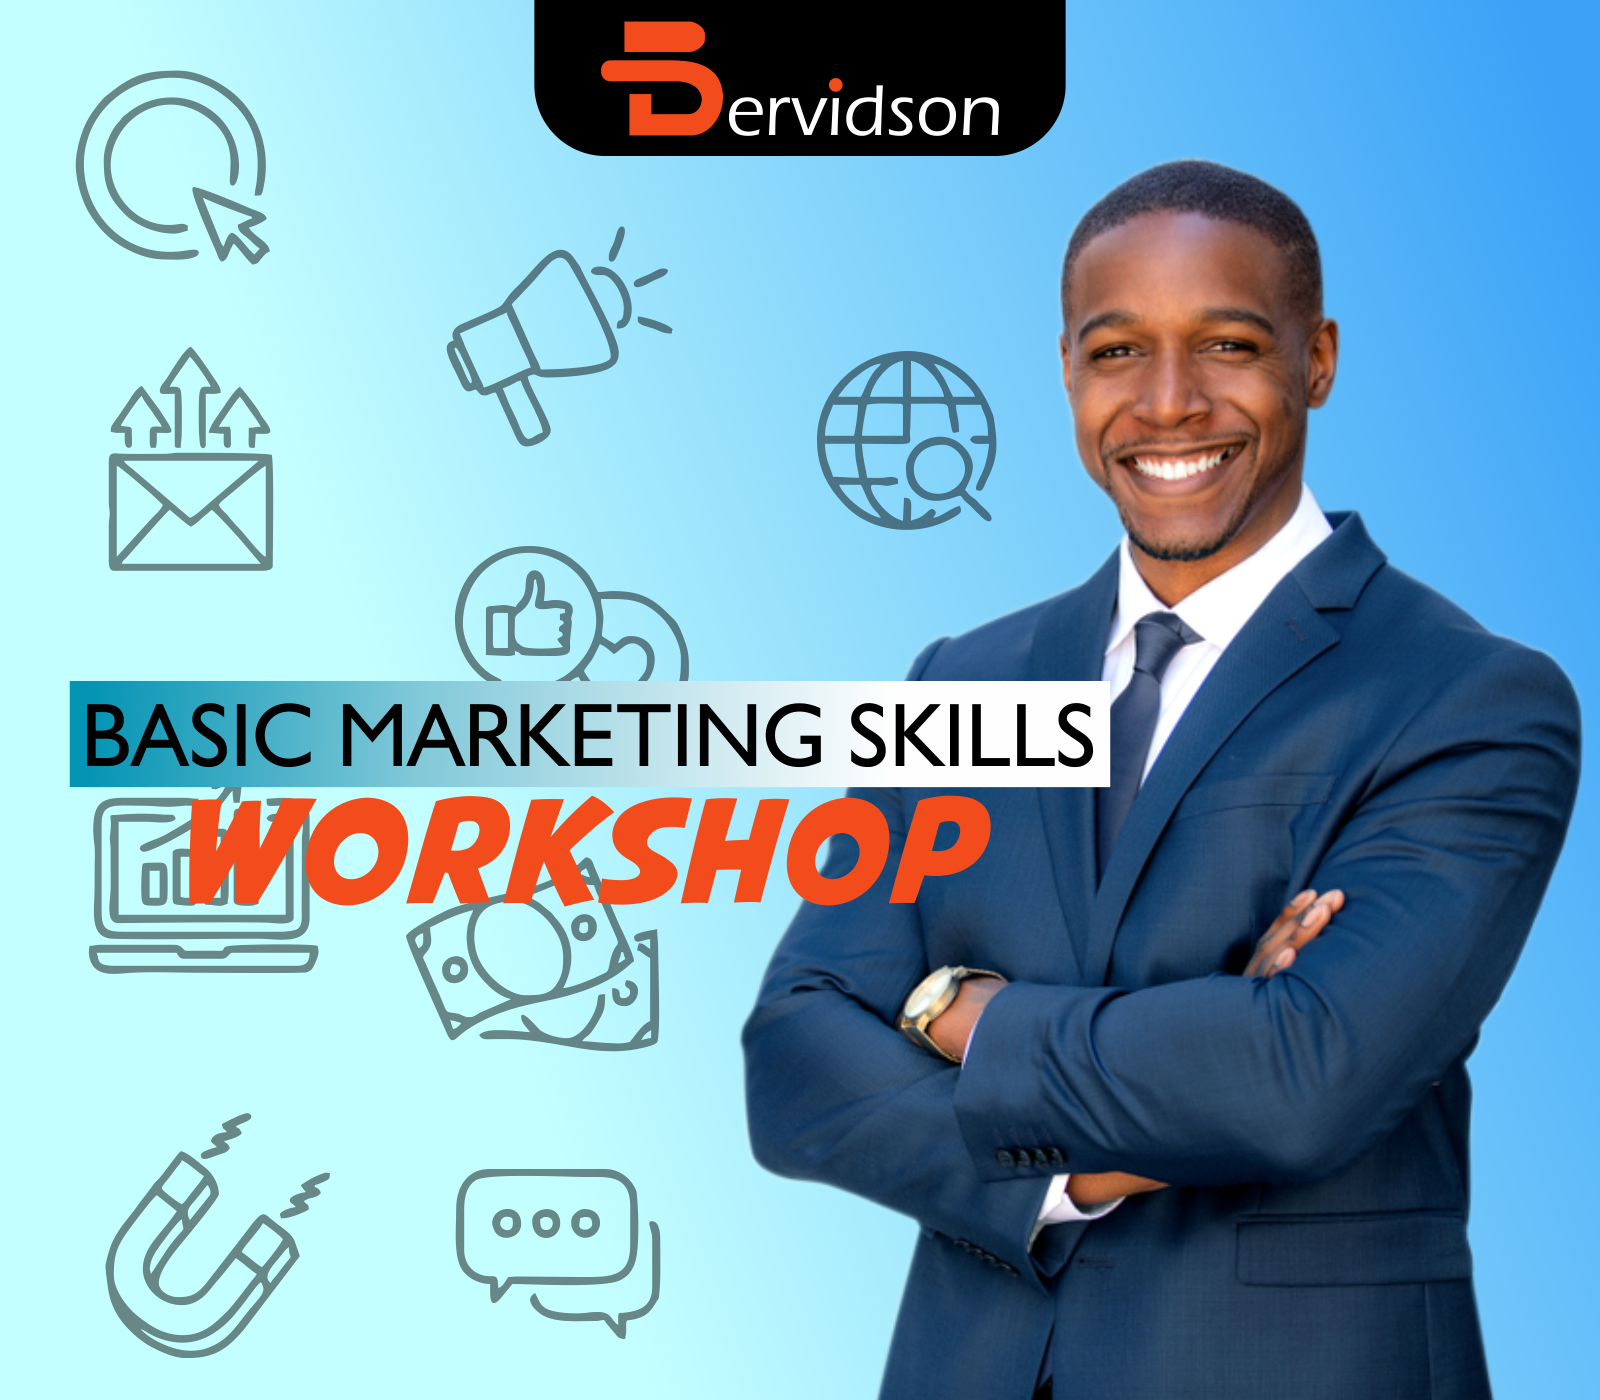 Basic Marketing Skills Workshop